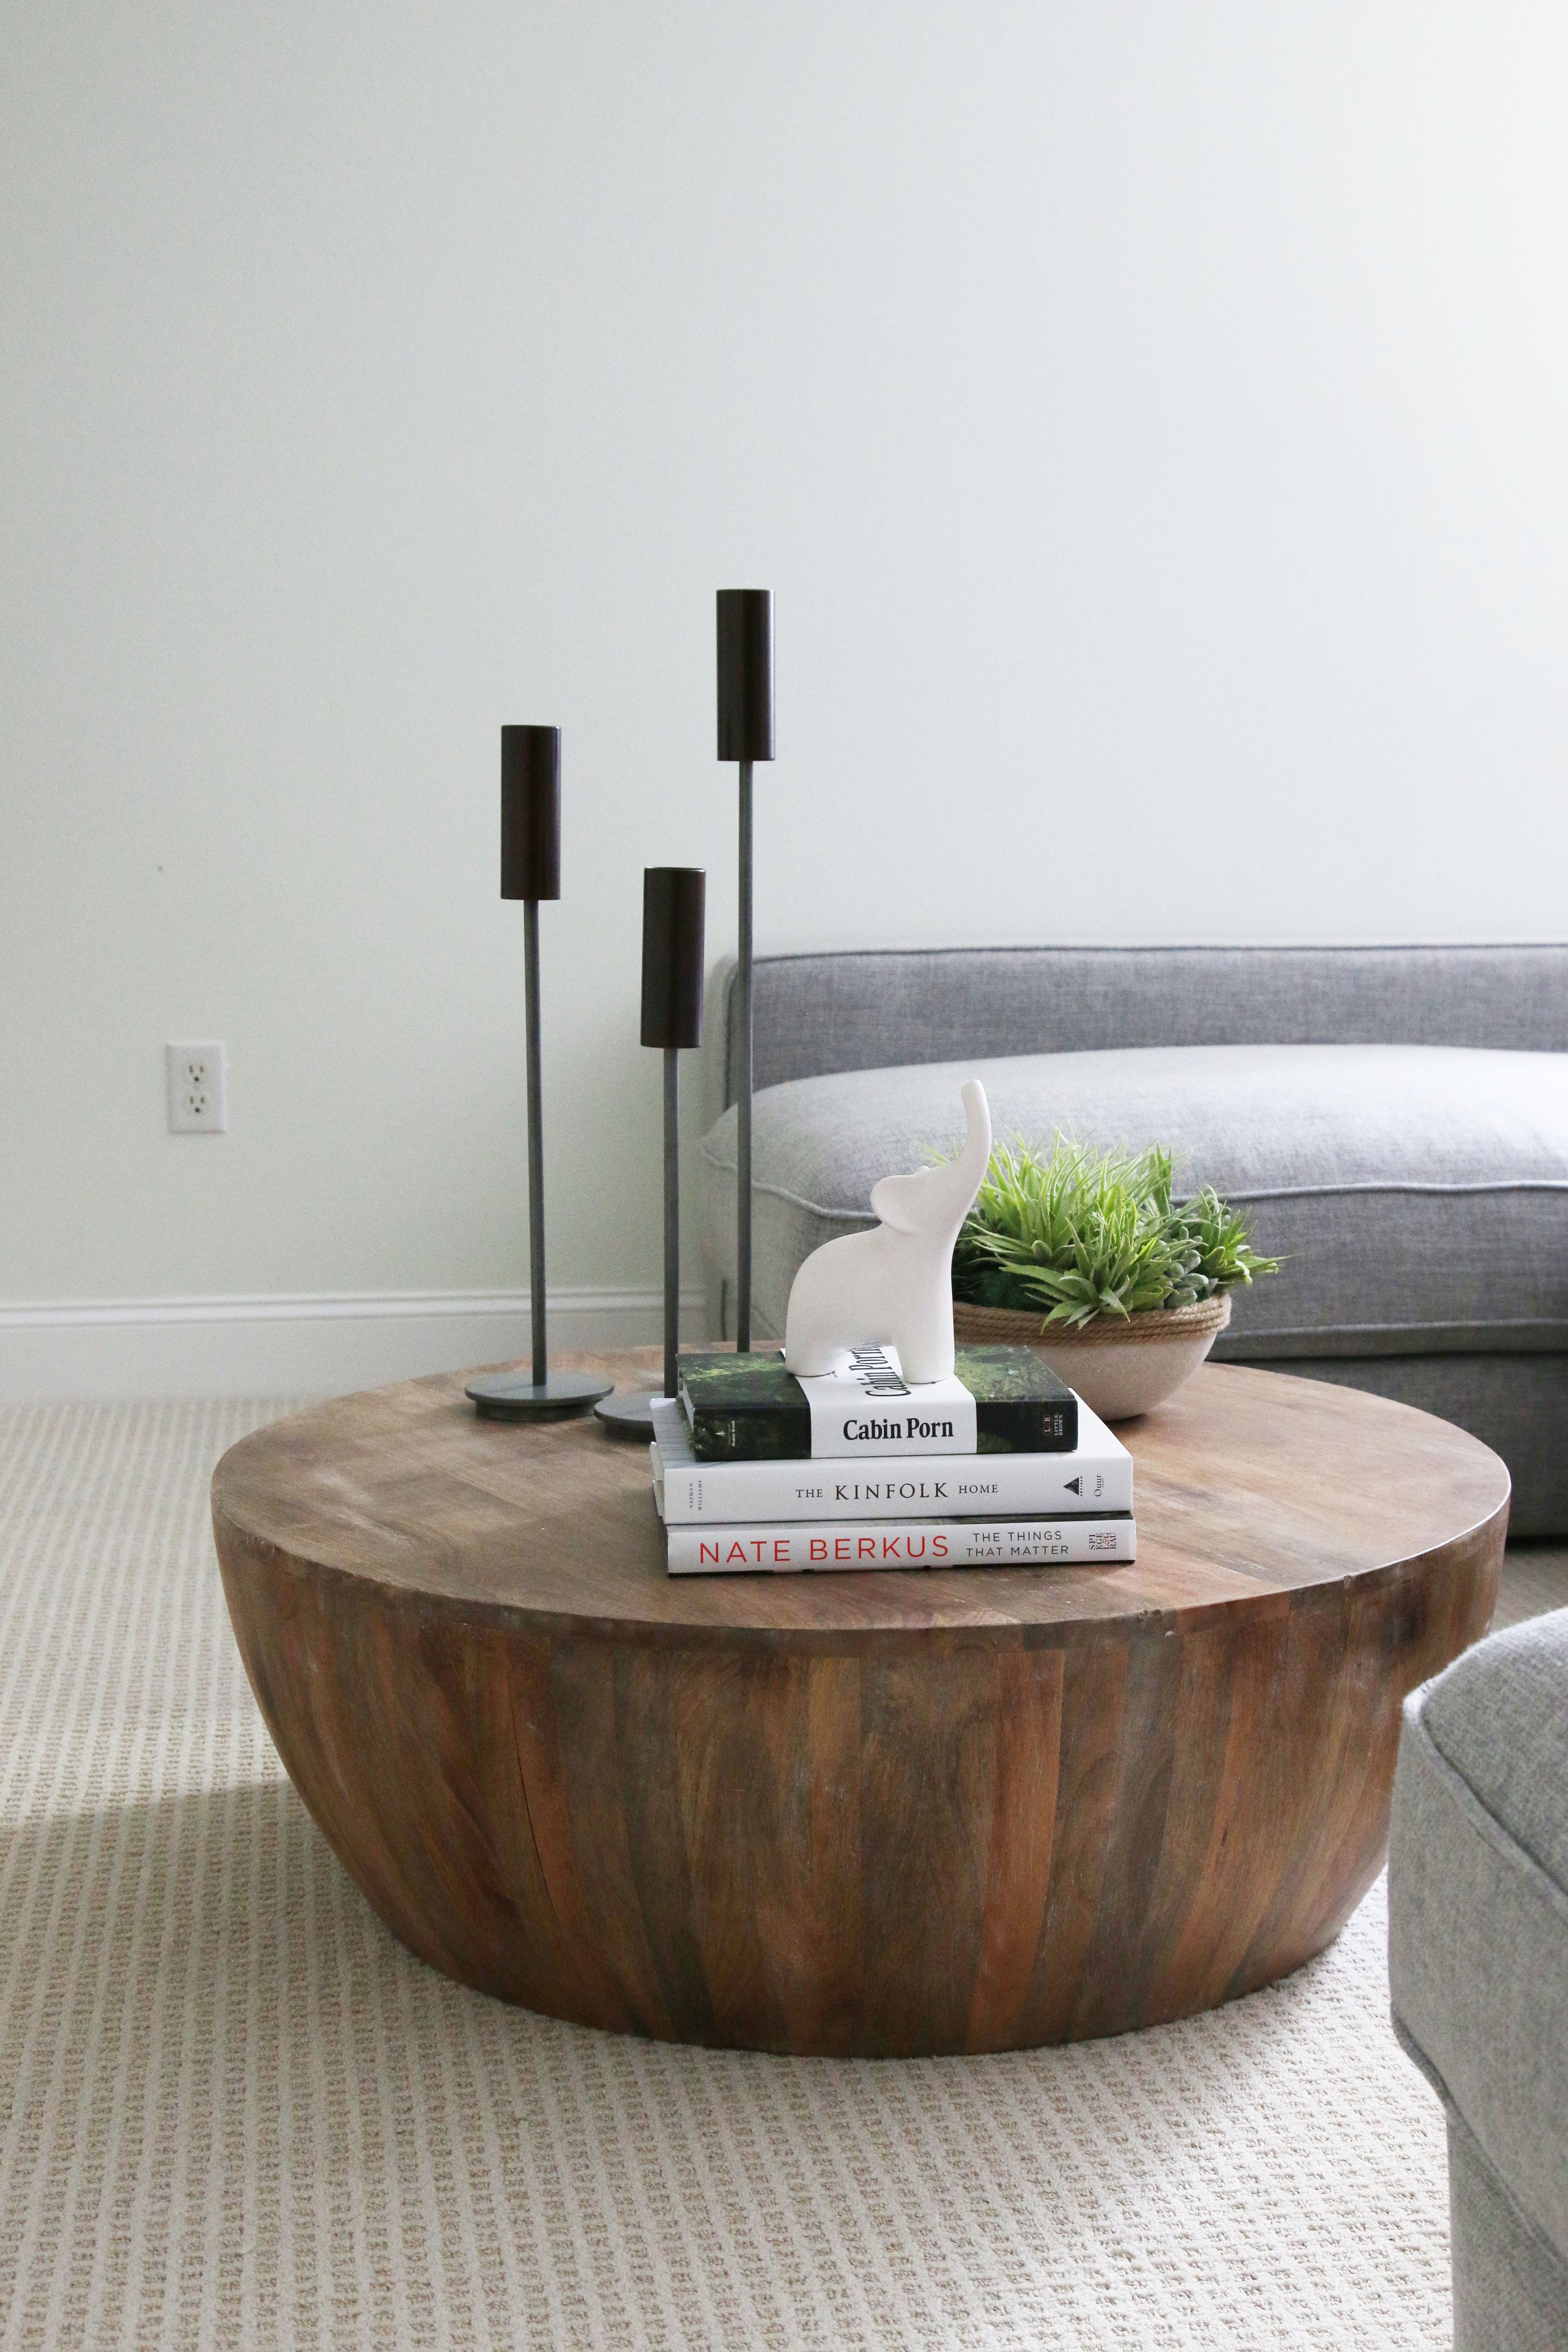 Styling A Family Friendly Coffee Table Cocktail Tables Living Room Decorating Coffee Tables Coffee Table Decor Tray [ 5472 x 3648 Pixel ]